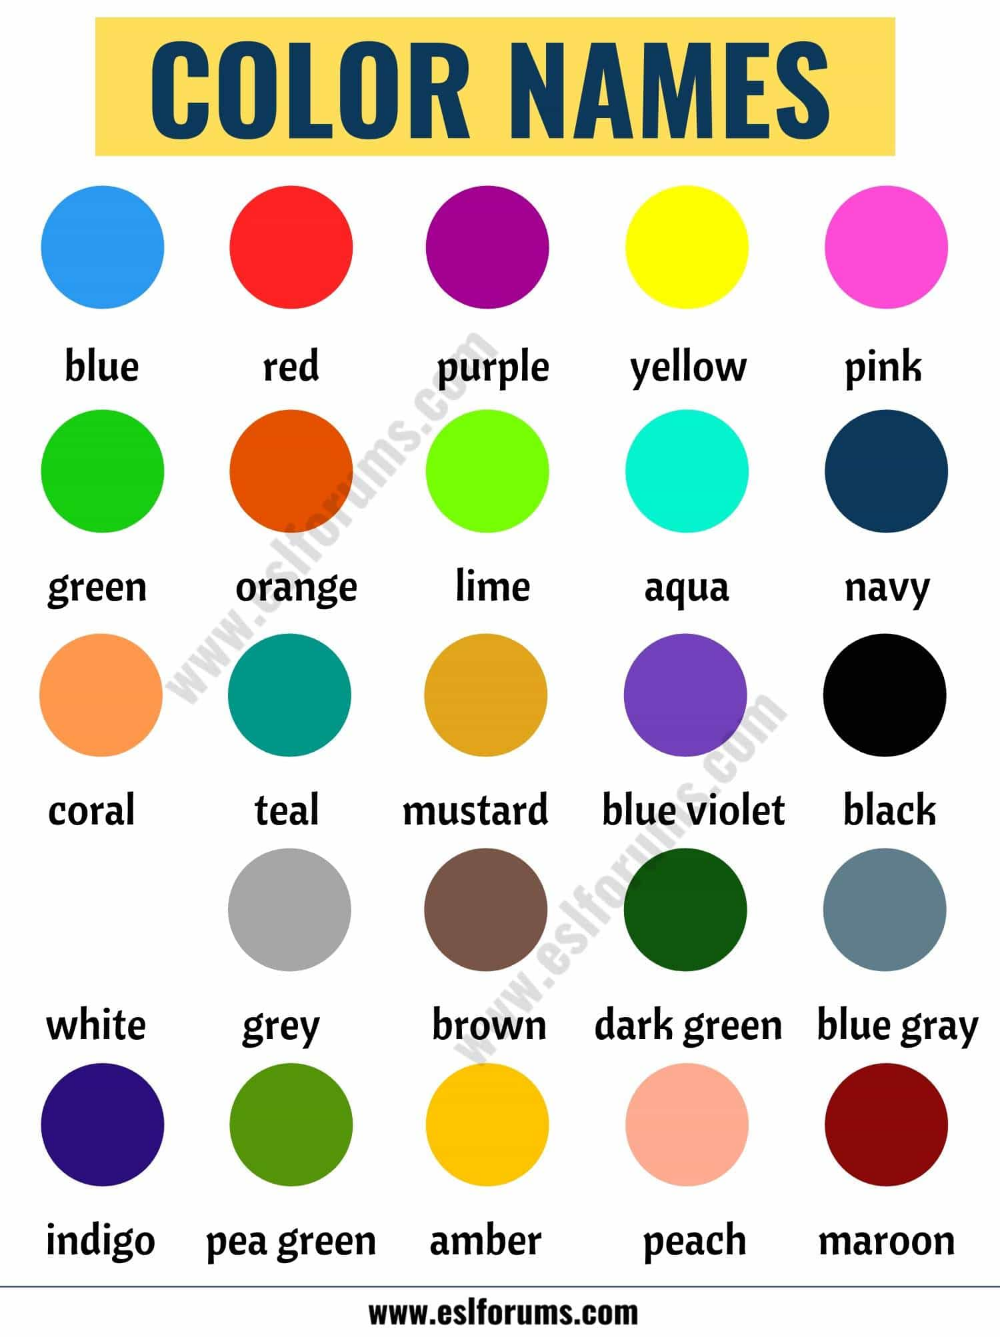 Color Names List Of Colors In English With The Picture Esl Forums Colors Name In English Colours Name For Kids Colour Names List